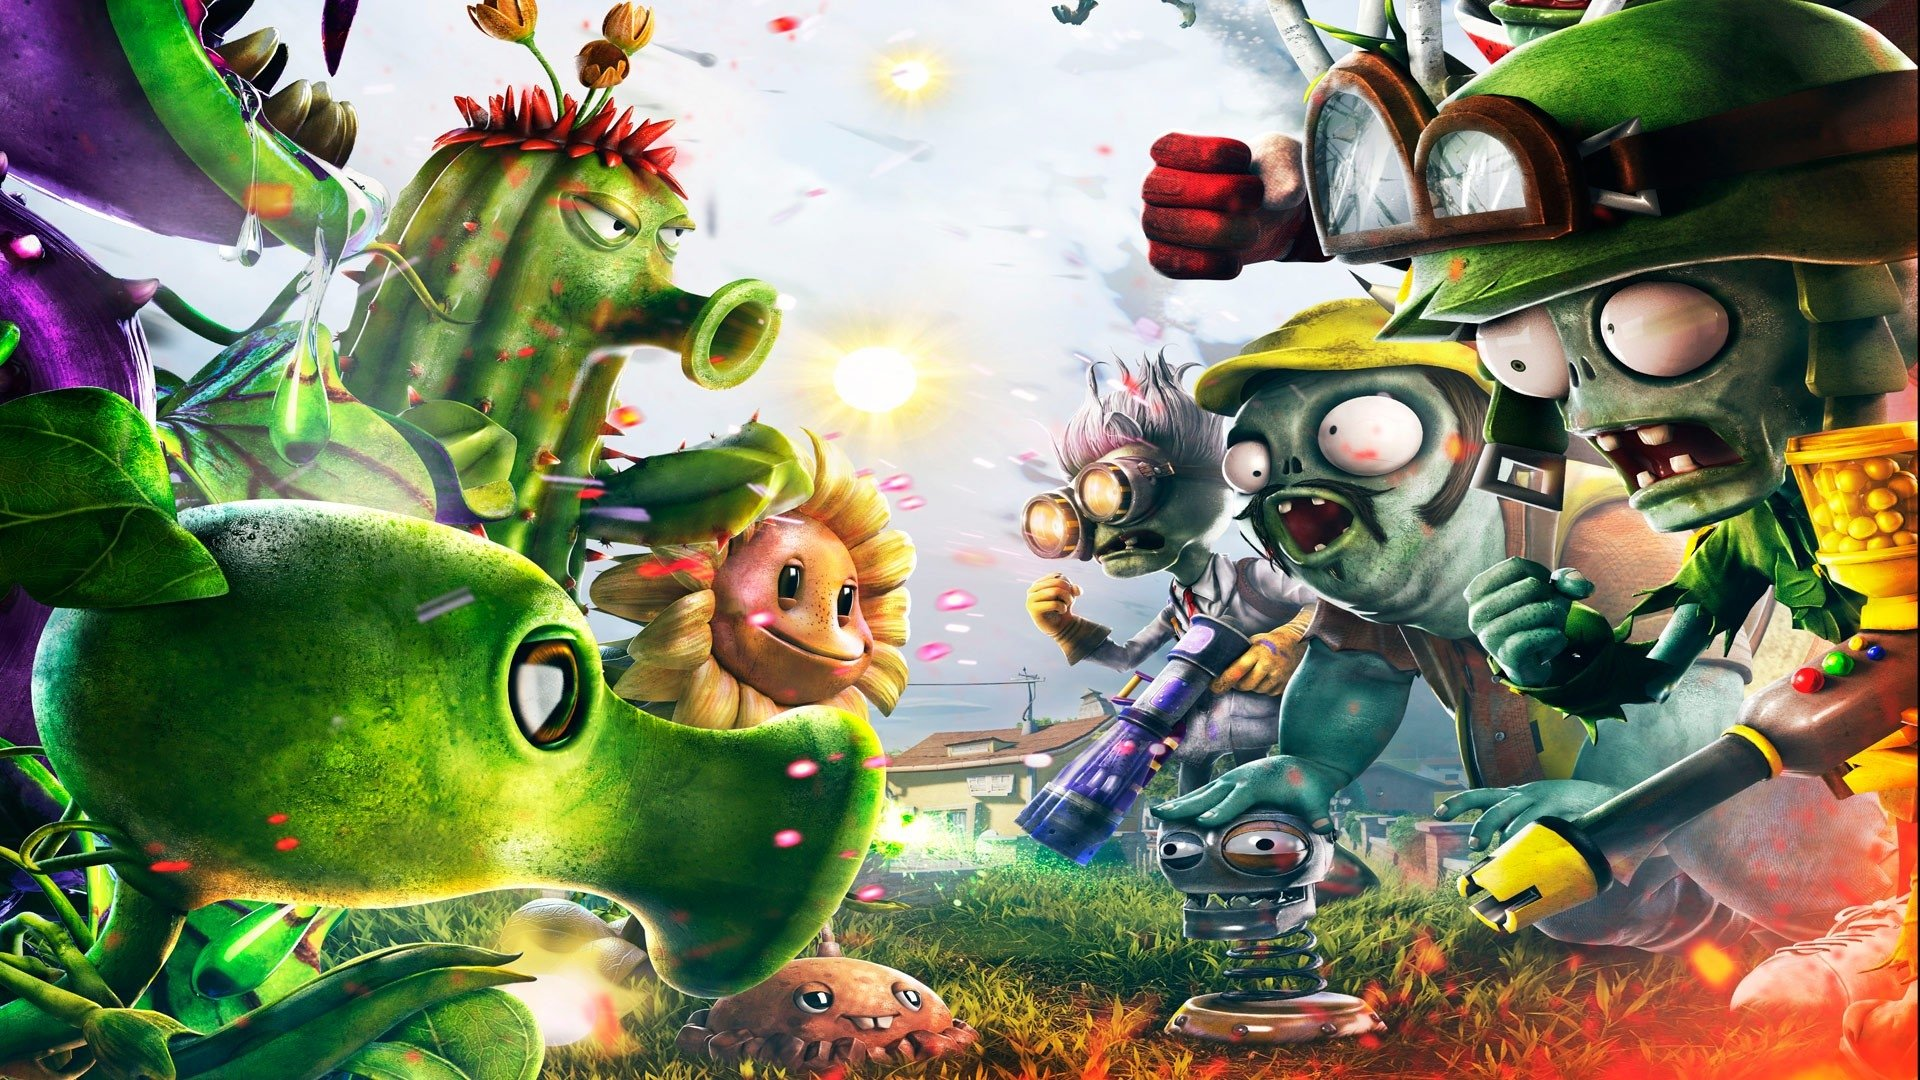 13 plants vs. zombies : garden warfare hd wallpapers | background